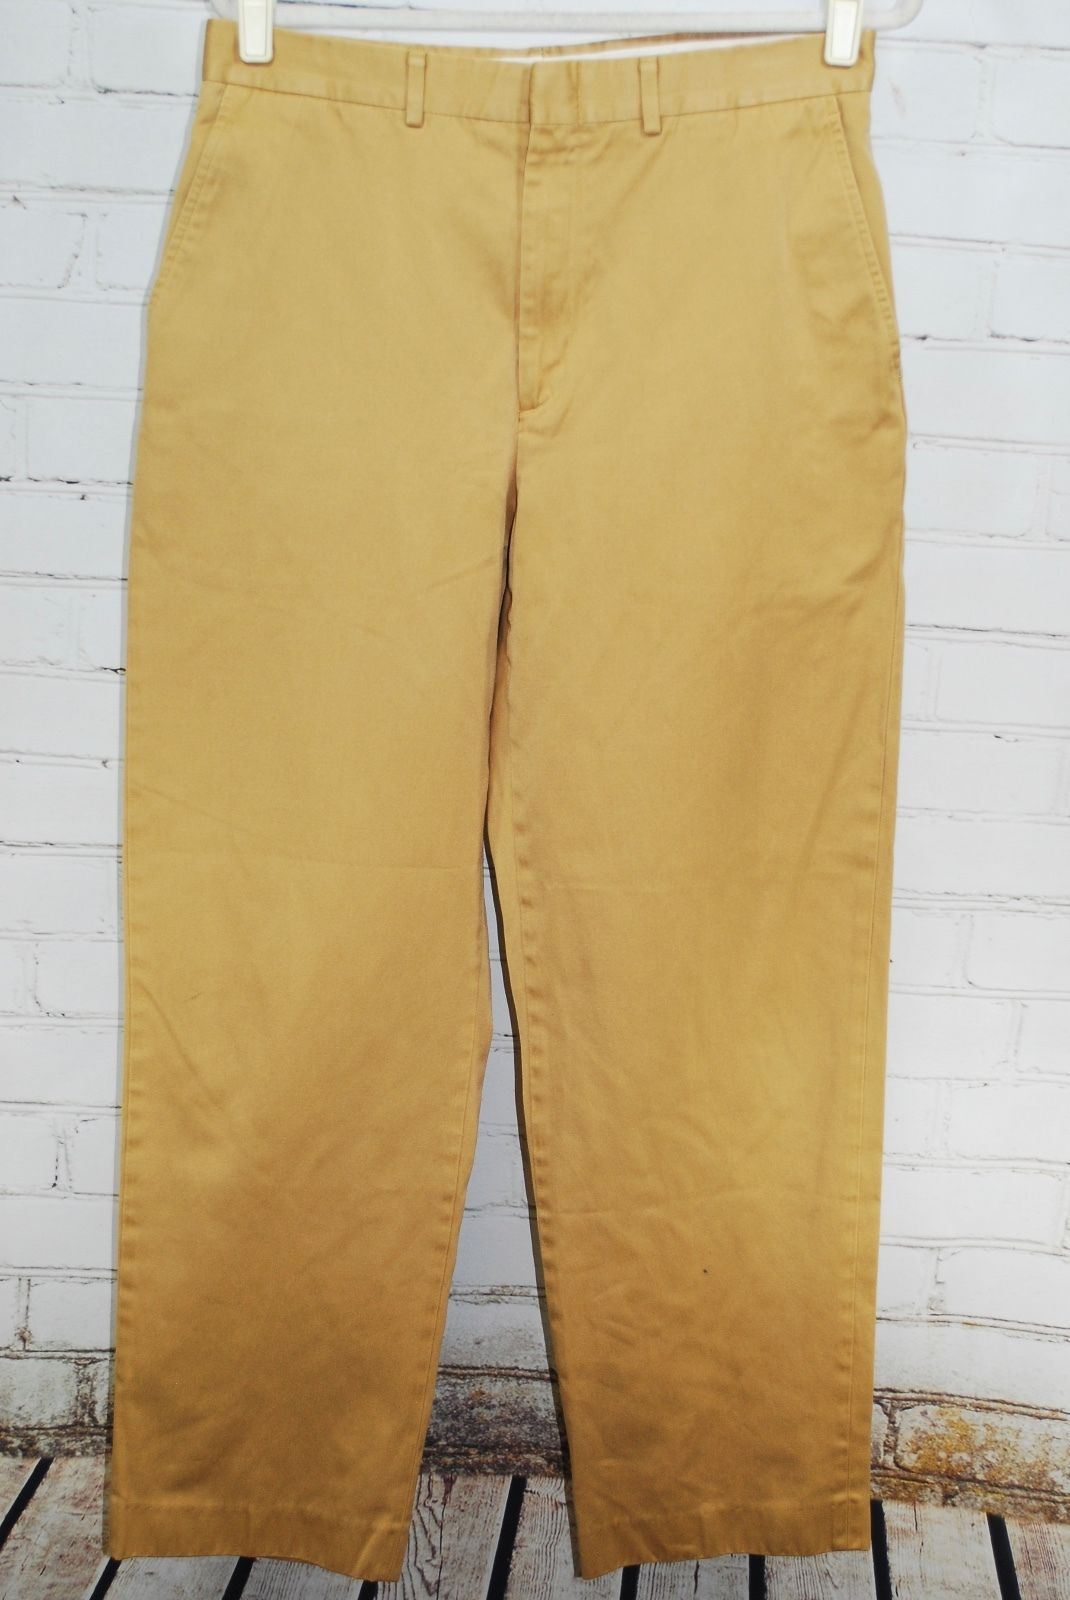 5030af9c4dcd LANDS END Chino Khaki Pants - Mens 34 x 30.5 and 45 similar items